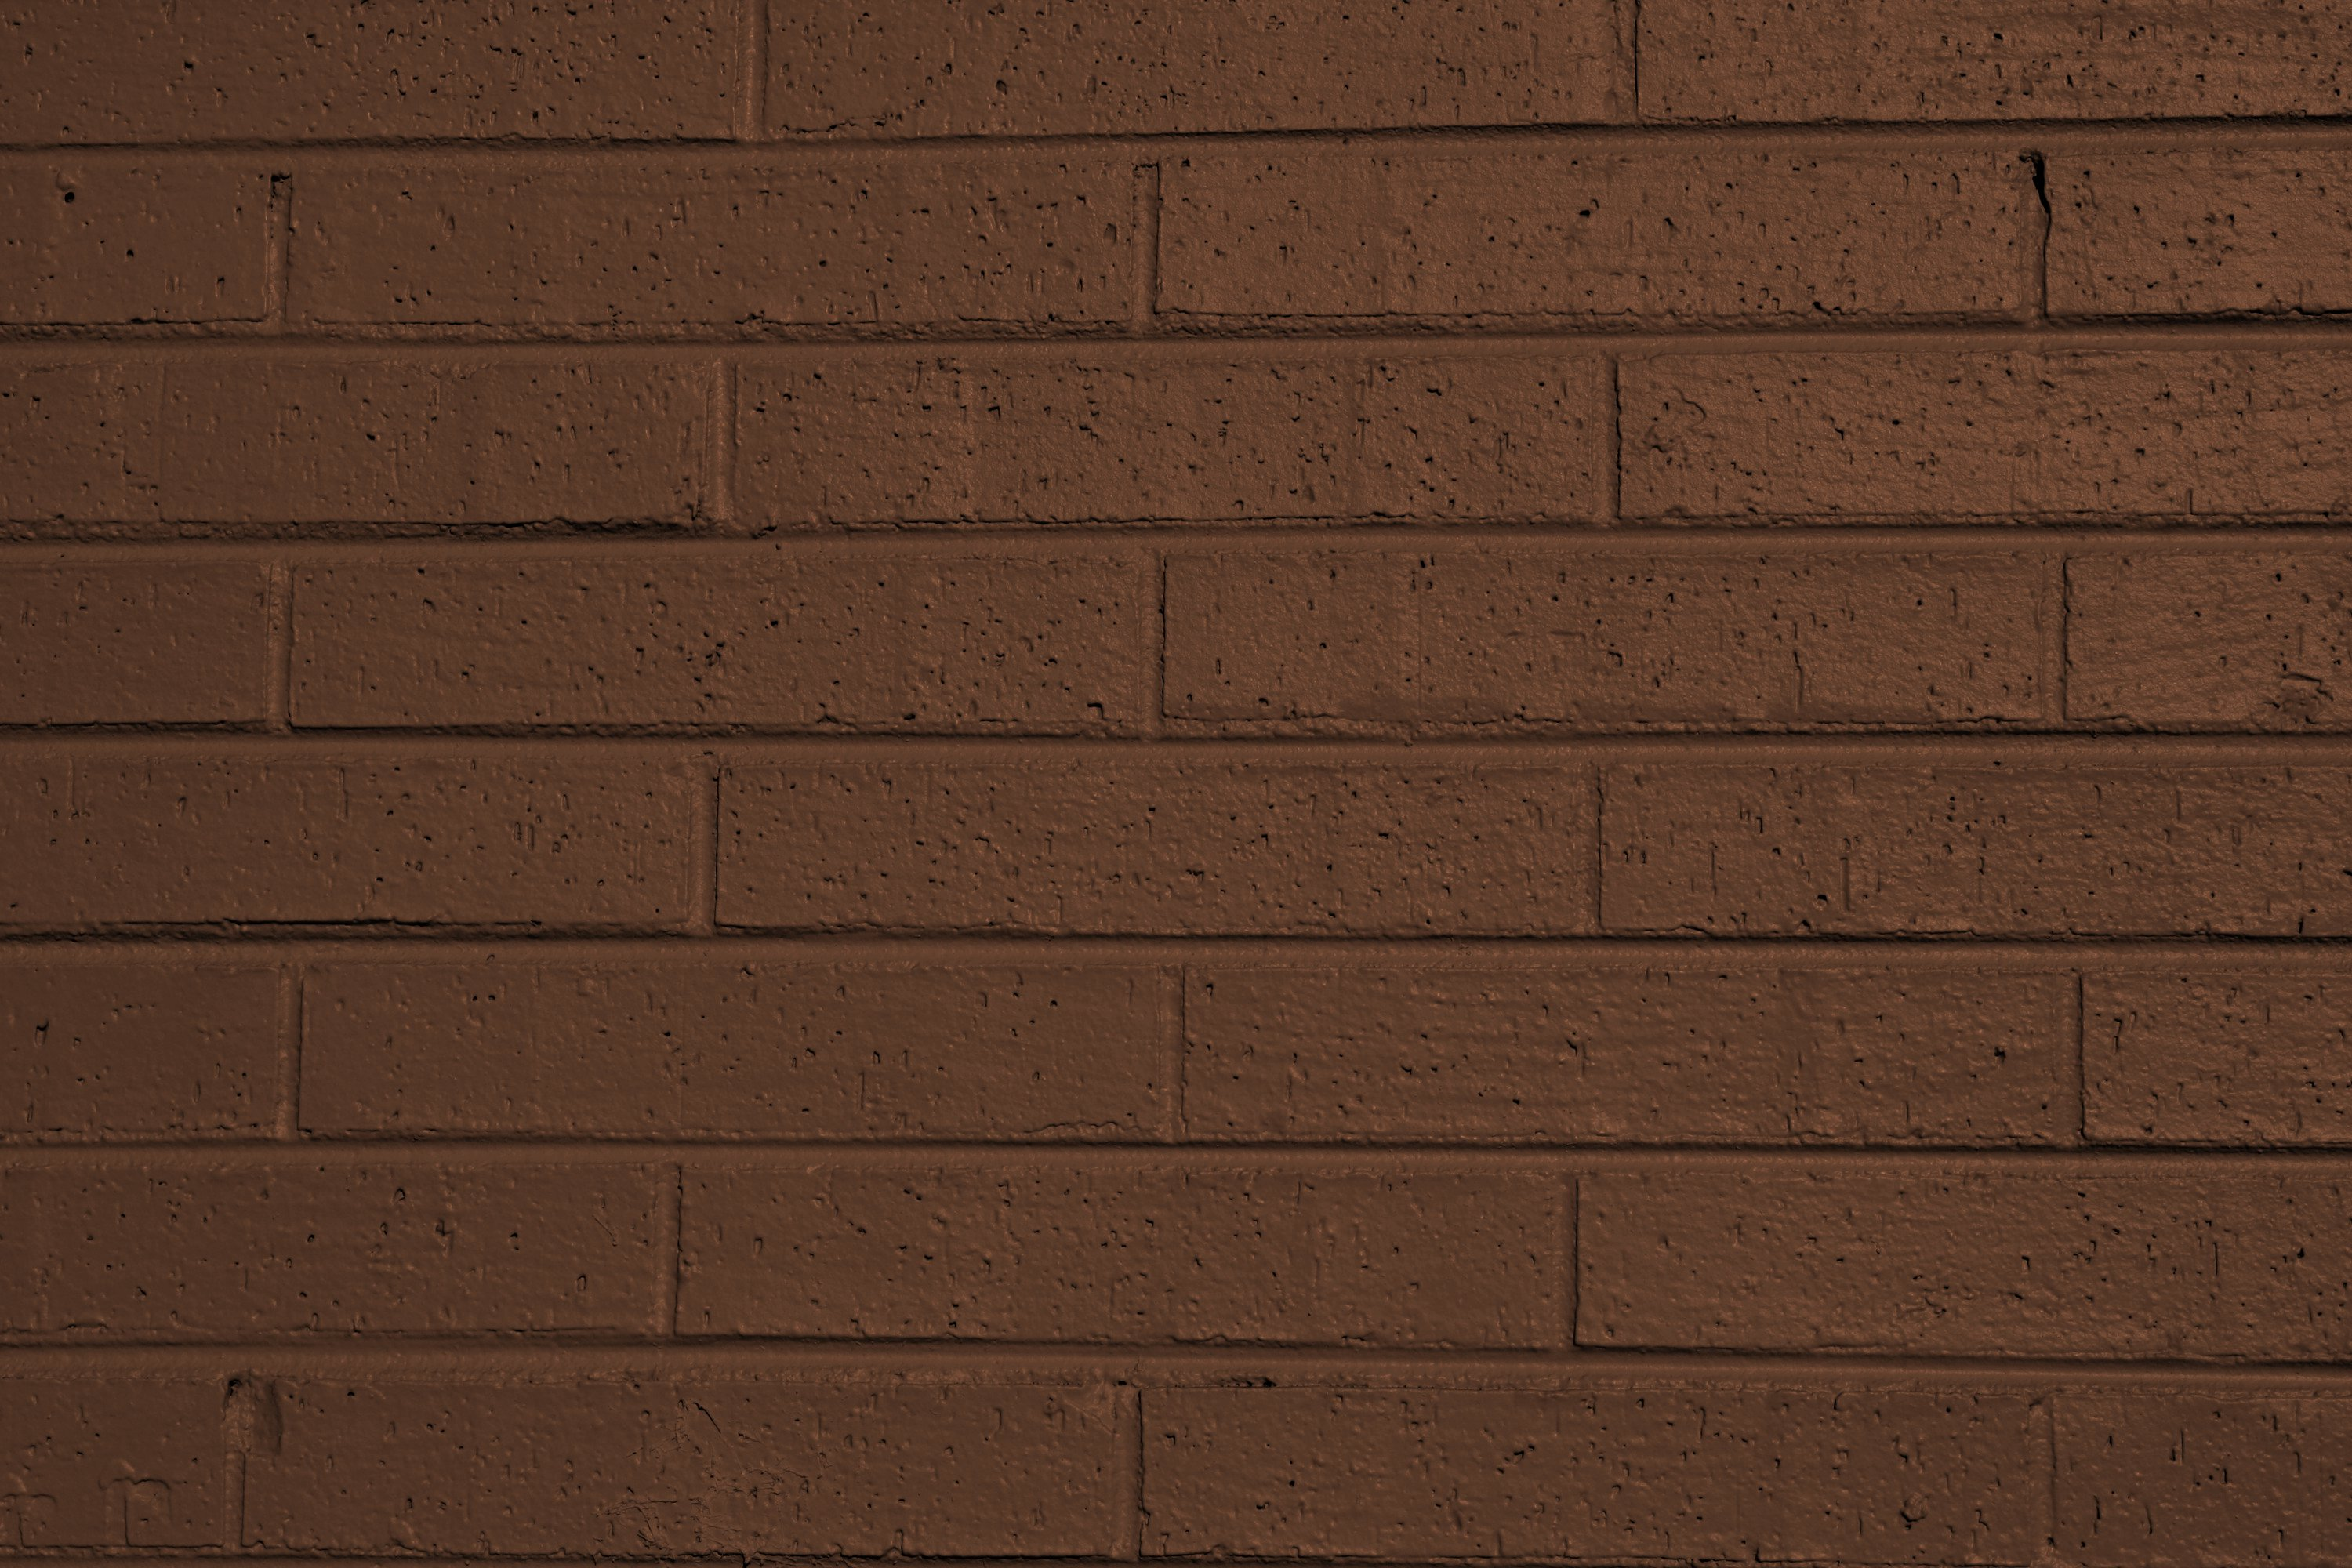 Brown Painted Brick Wall Texture Picture Free Photograph Photos Public Domain